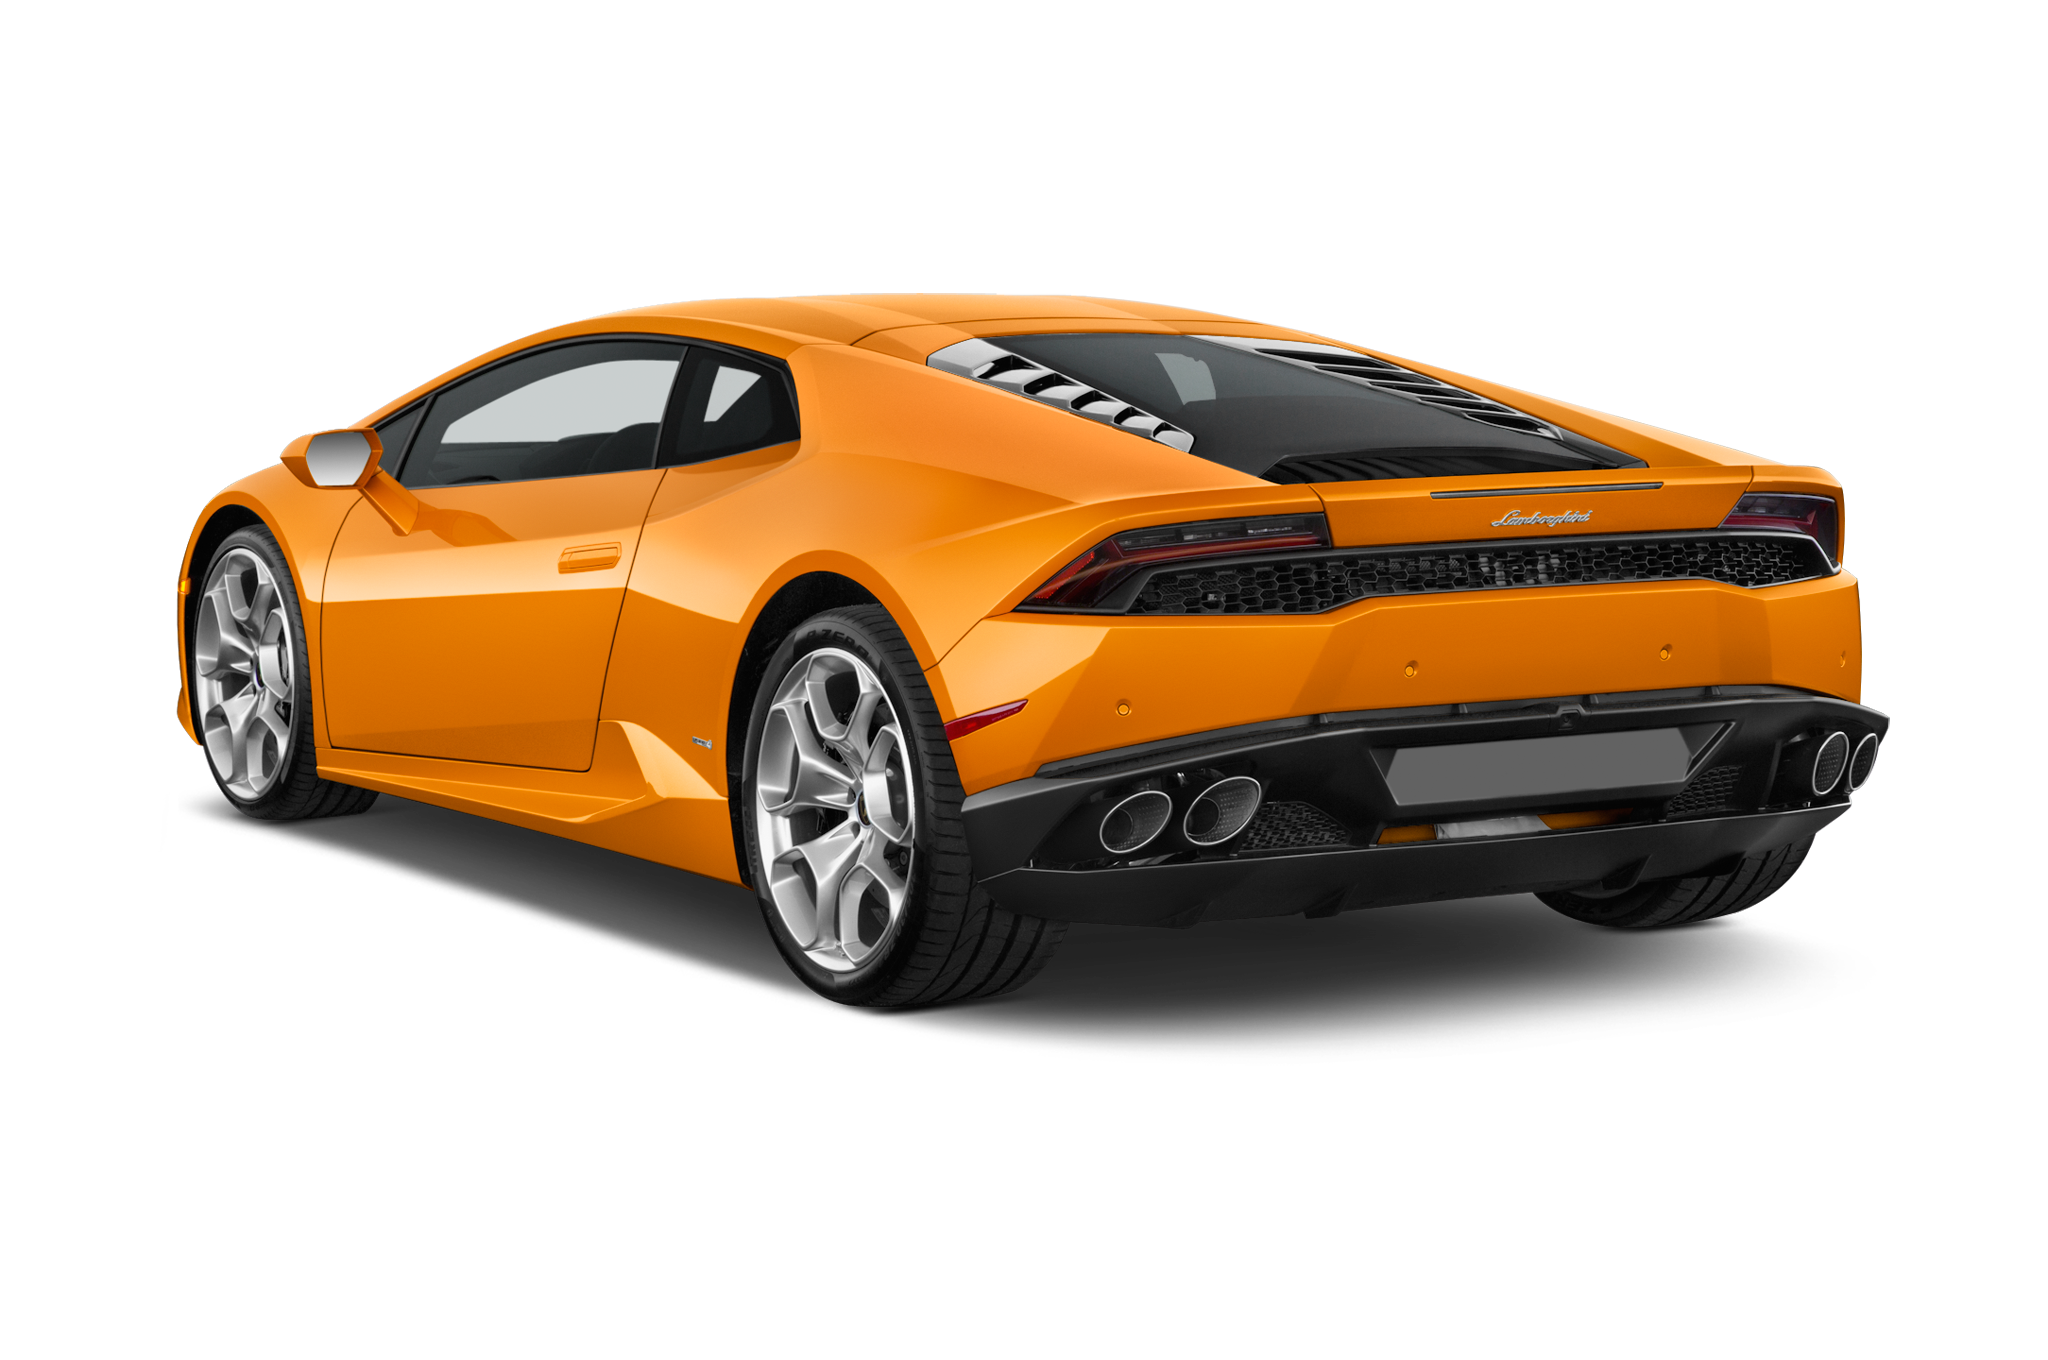 the last true supercar: lamborghini huracán lp580-2 spyder